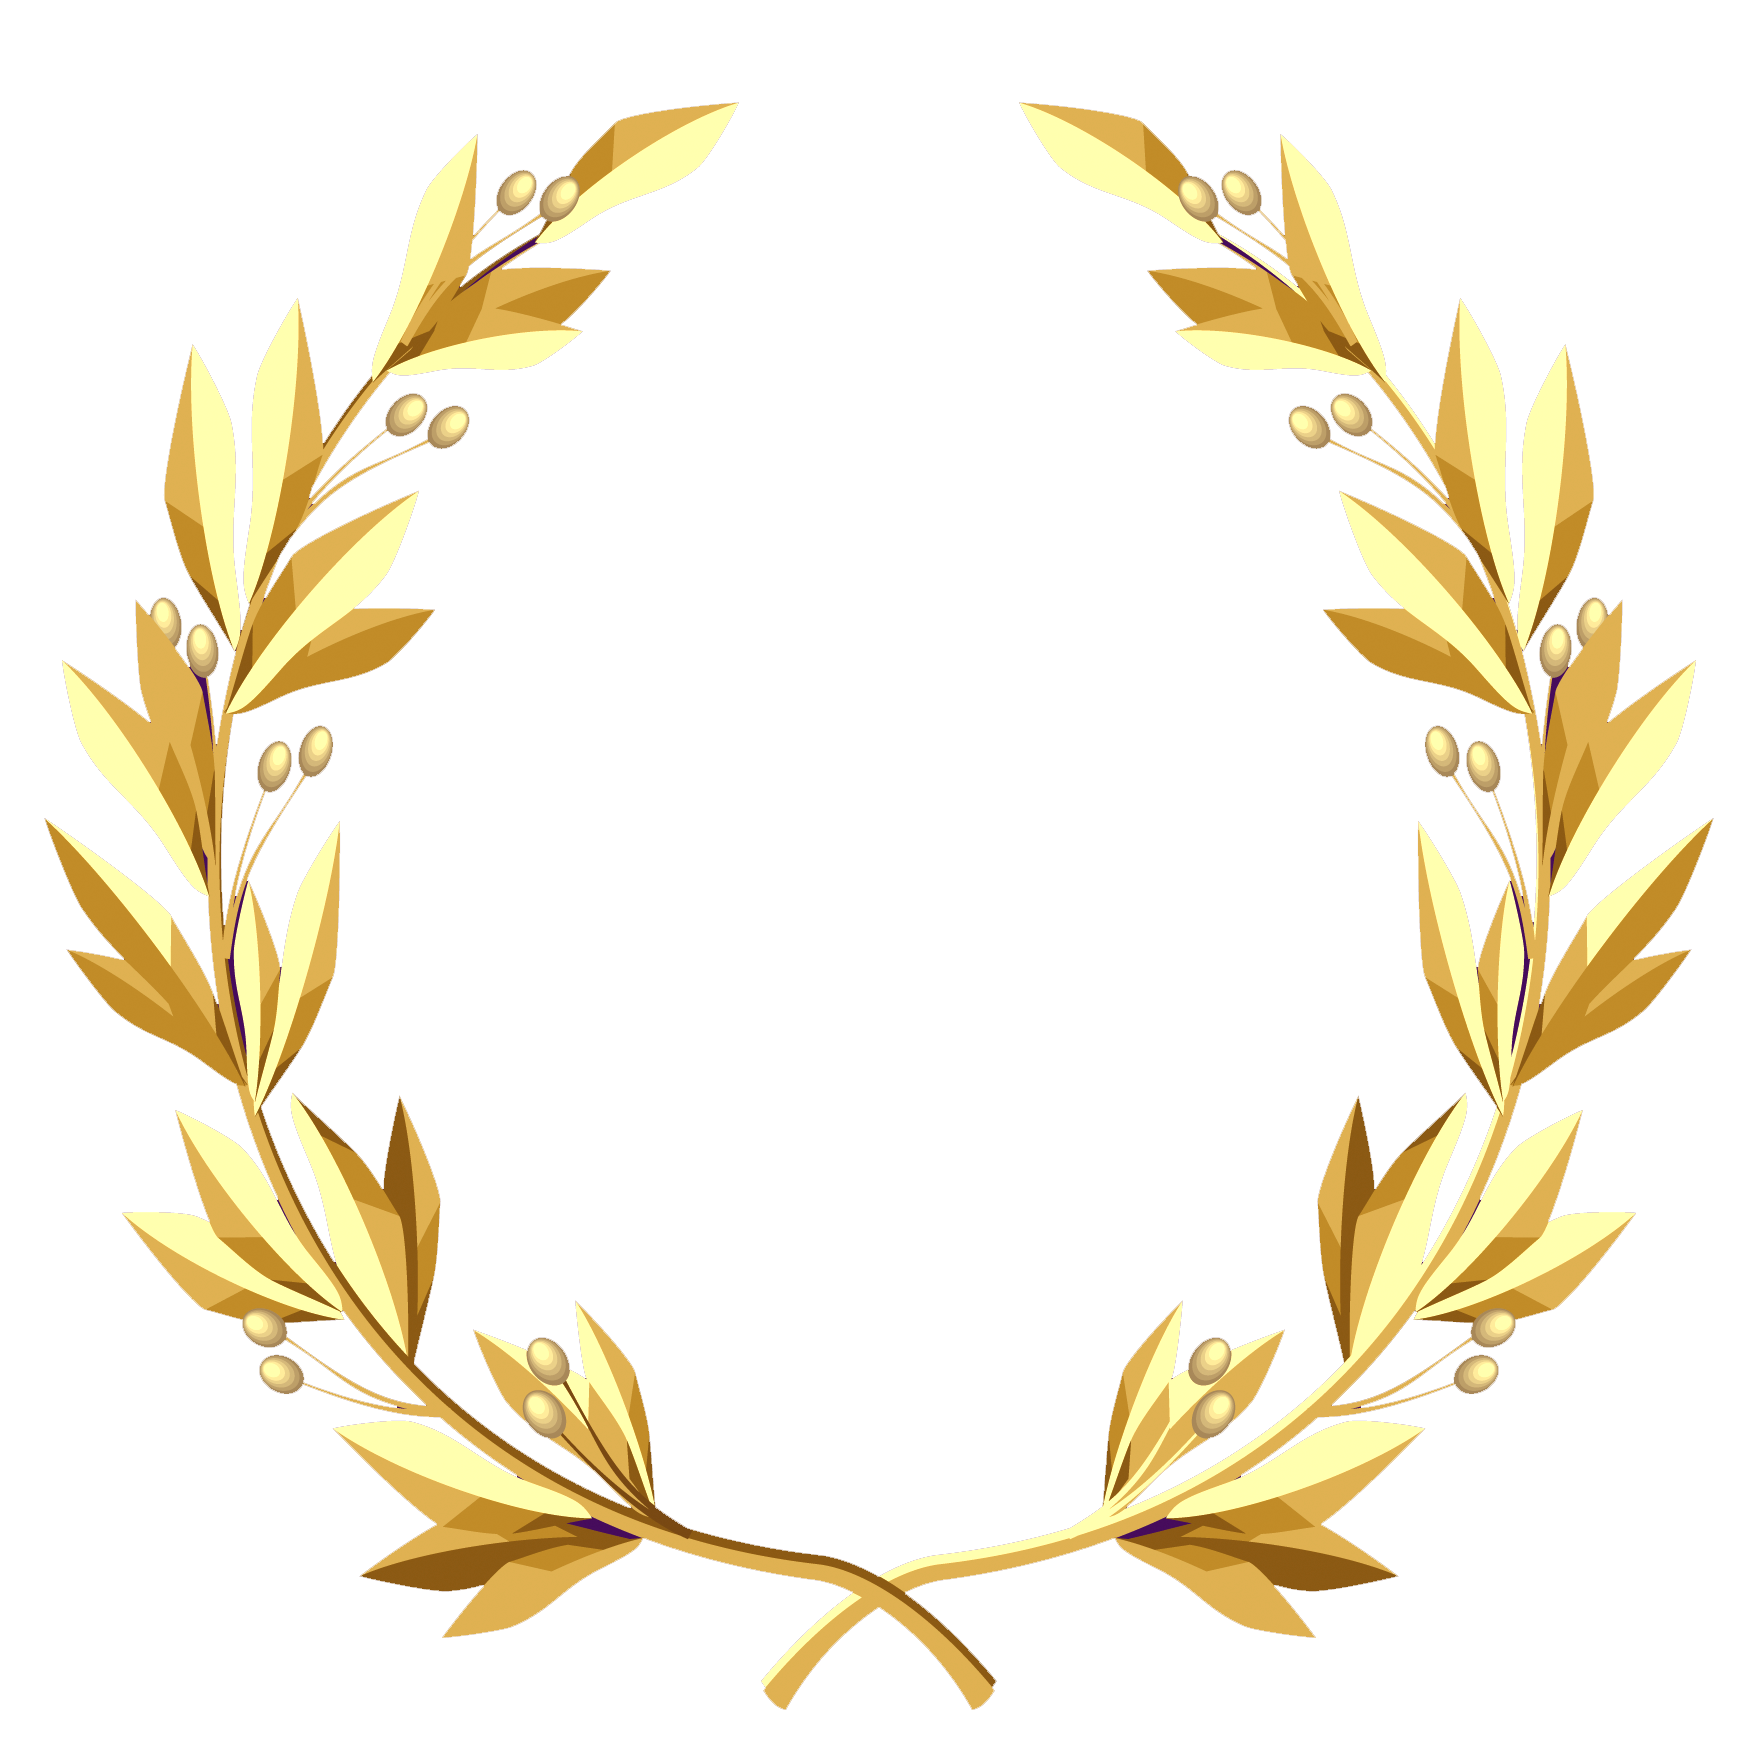 Gold wreath png. Transparent clipart picture gallery